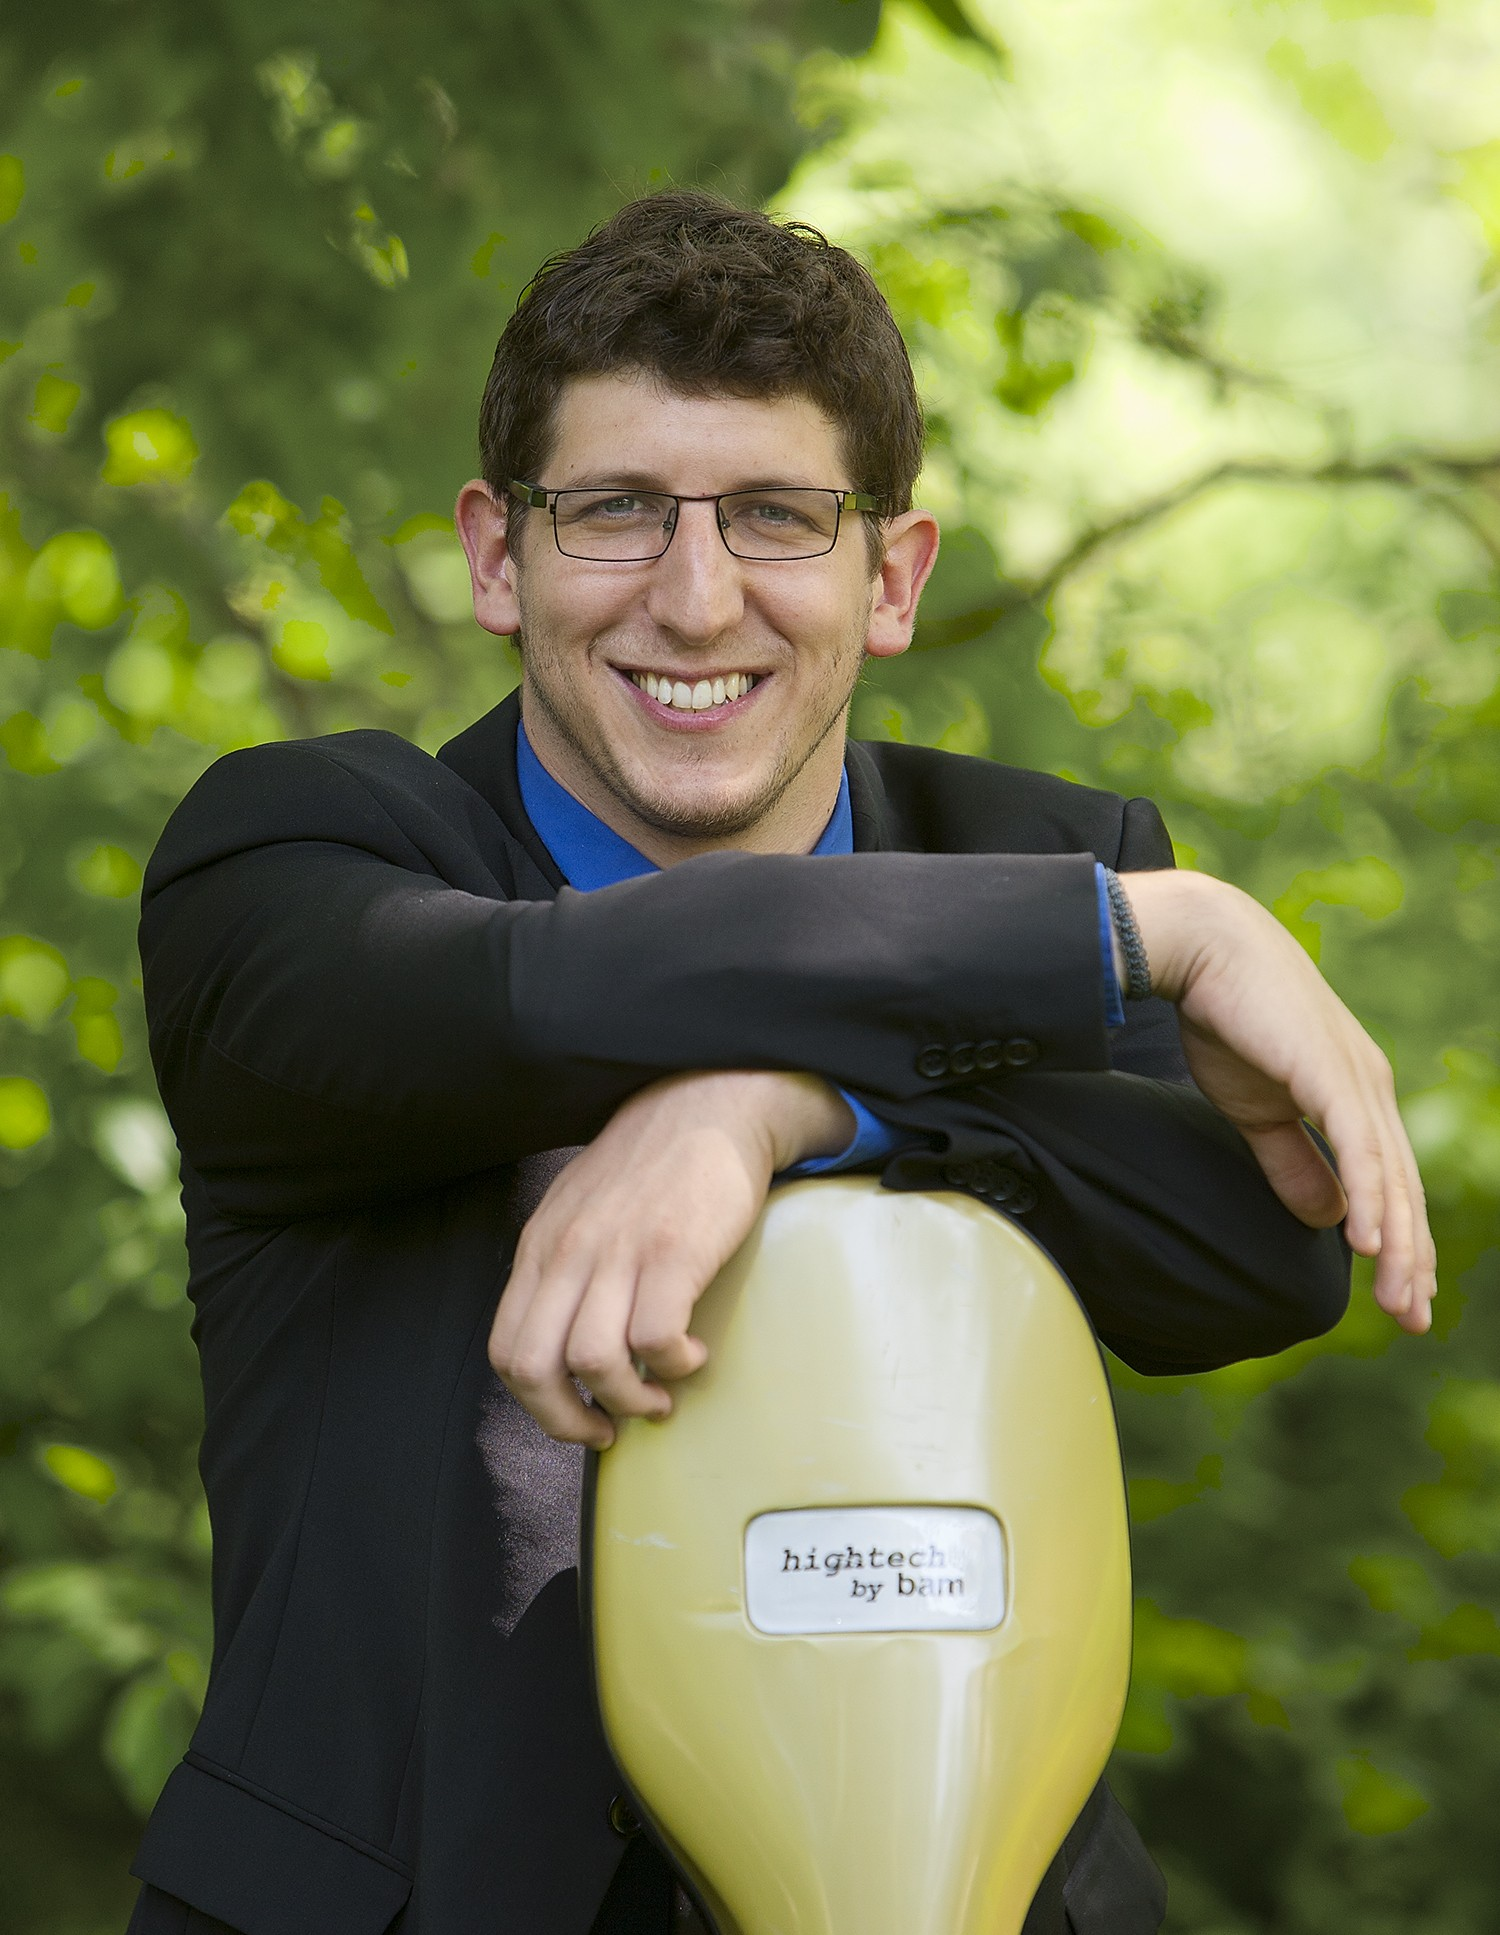 Oded Hadar, Cellist - Photo Credit: Richard Carr